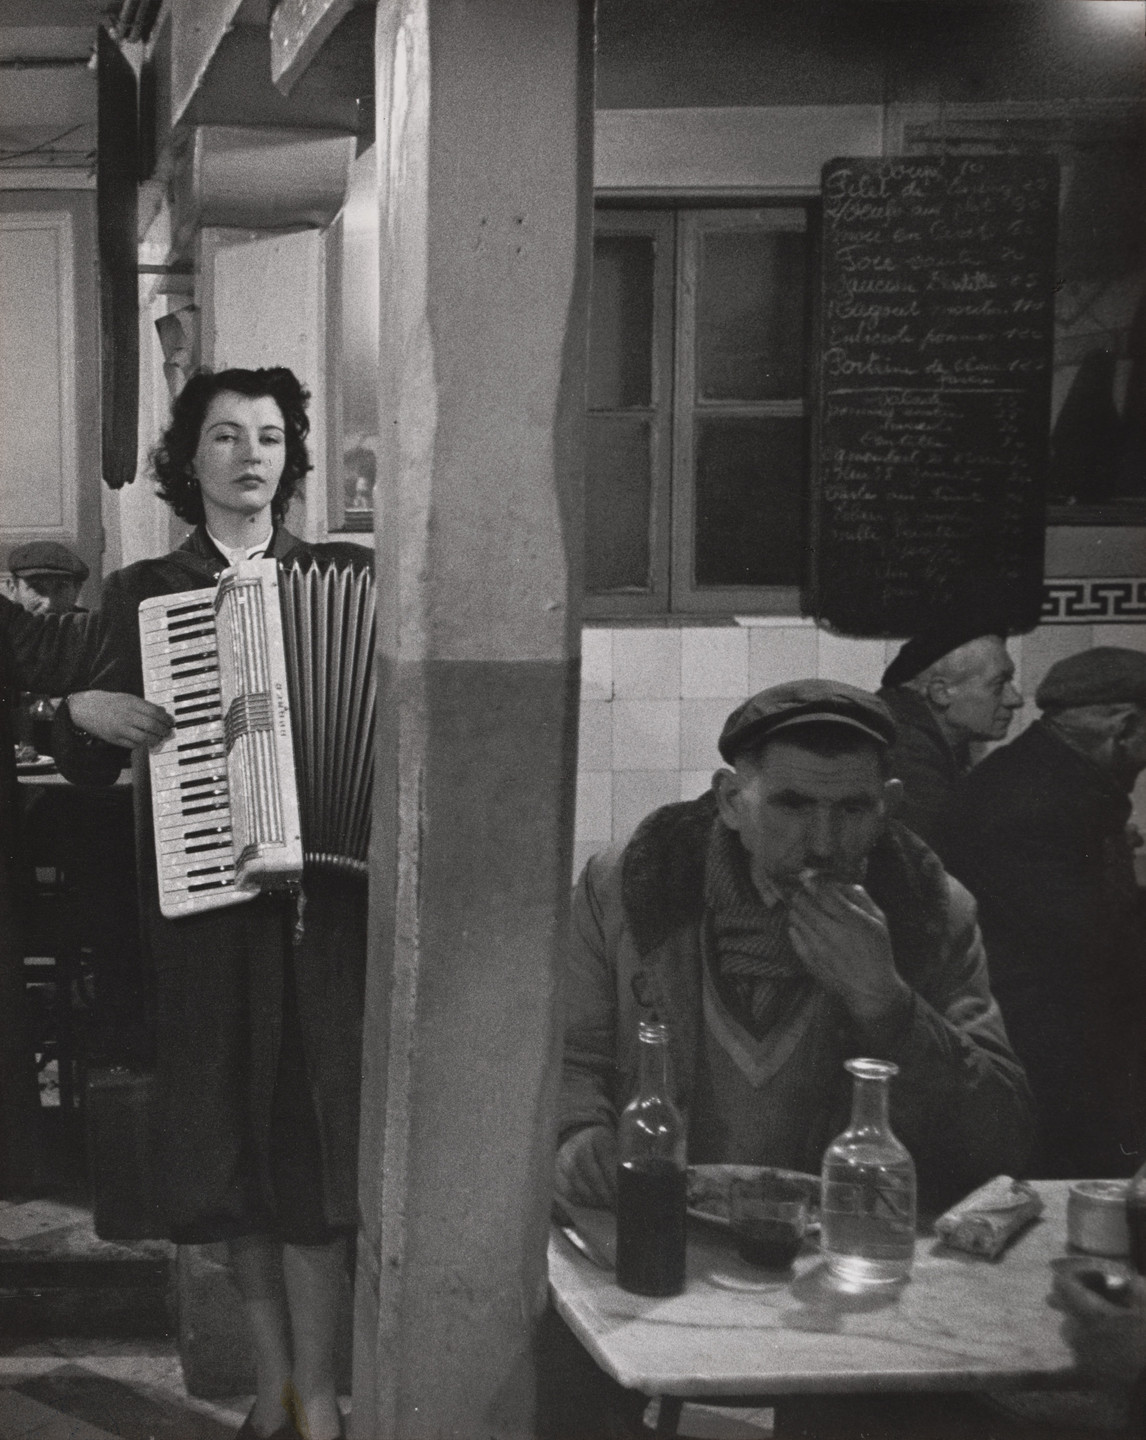 Robert Doisneau. Accordionist Playing in a Bistro near Les Halles, Paris. c. 1950